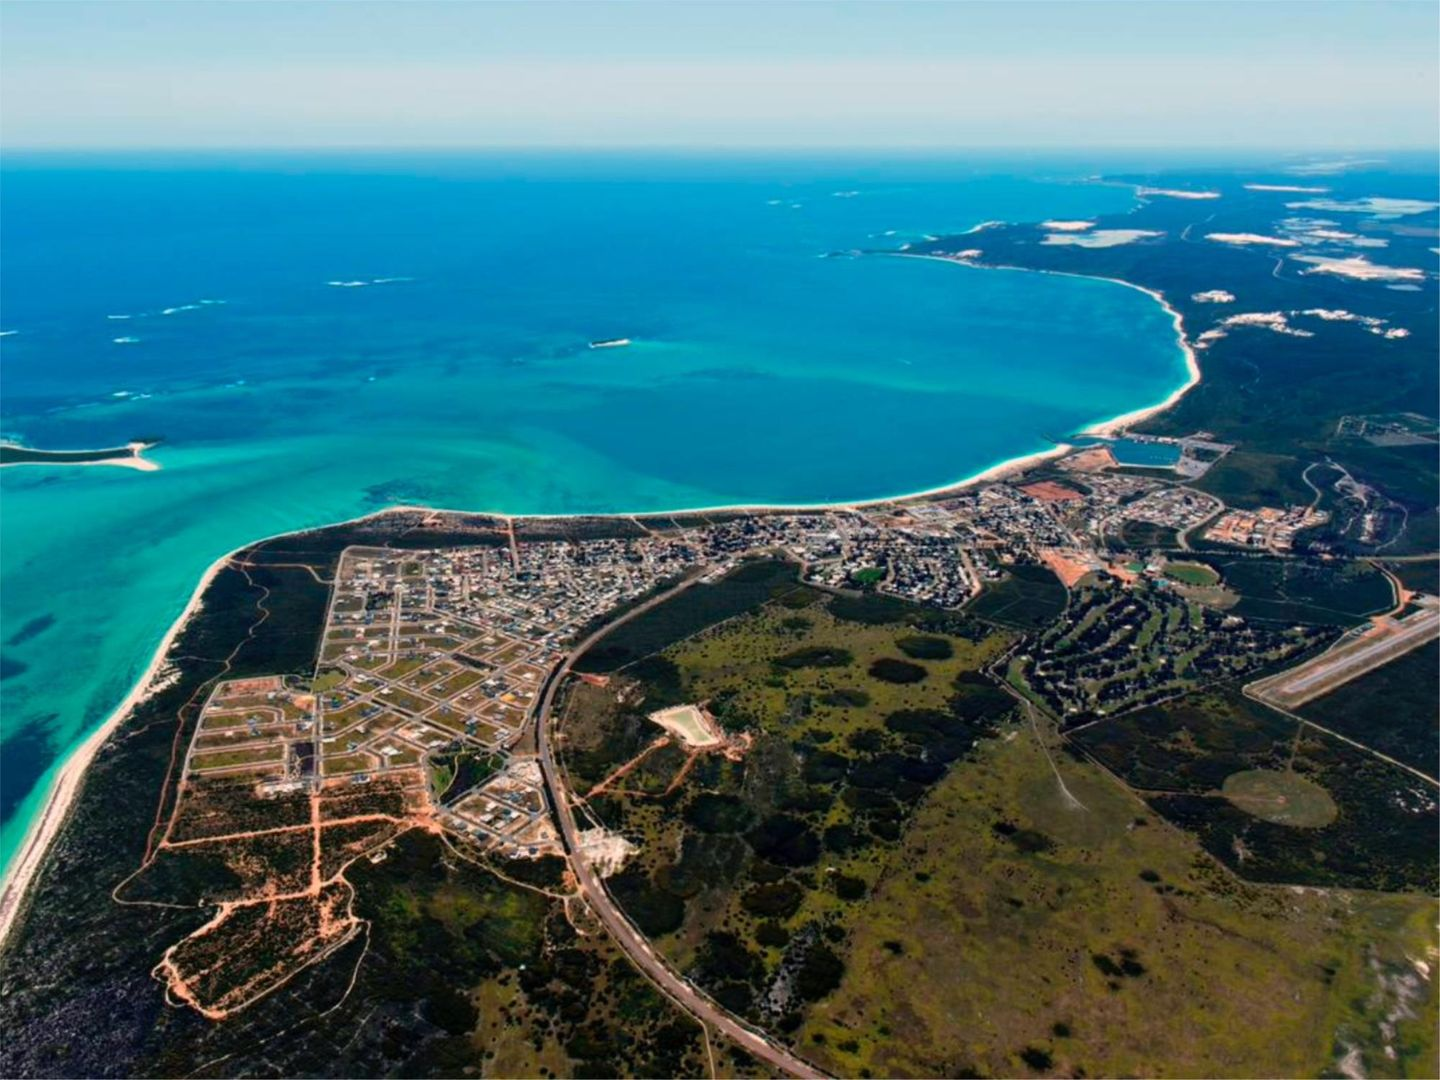 Lot 410 Jurien Bay Vista, Jurien Bay WA 6516, Image 1